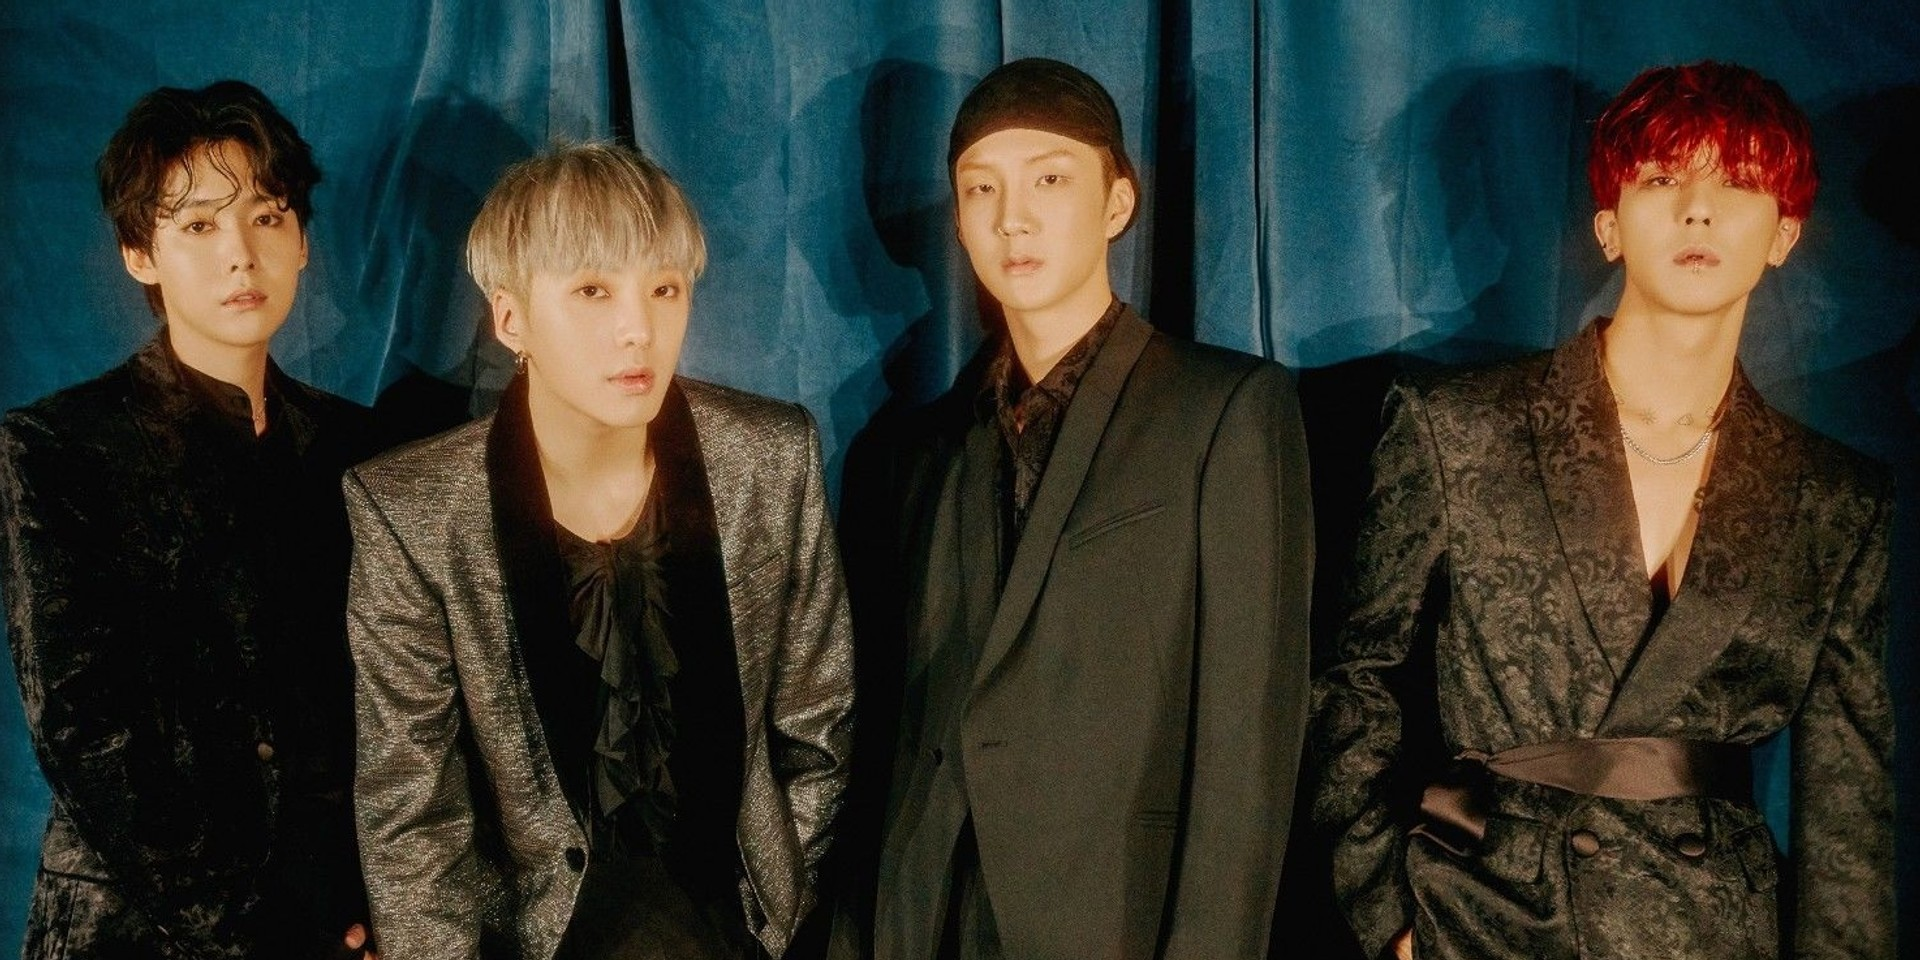 WINNER's Singapore concert has been cancelled